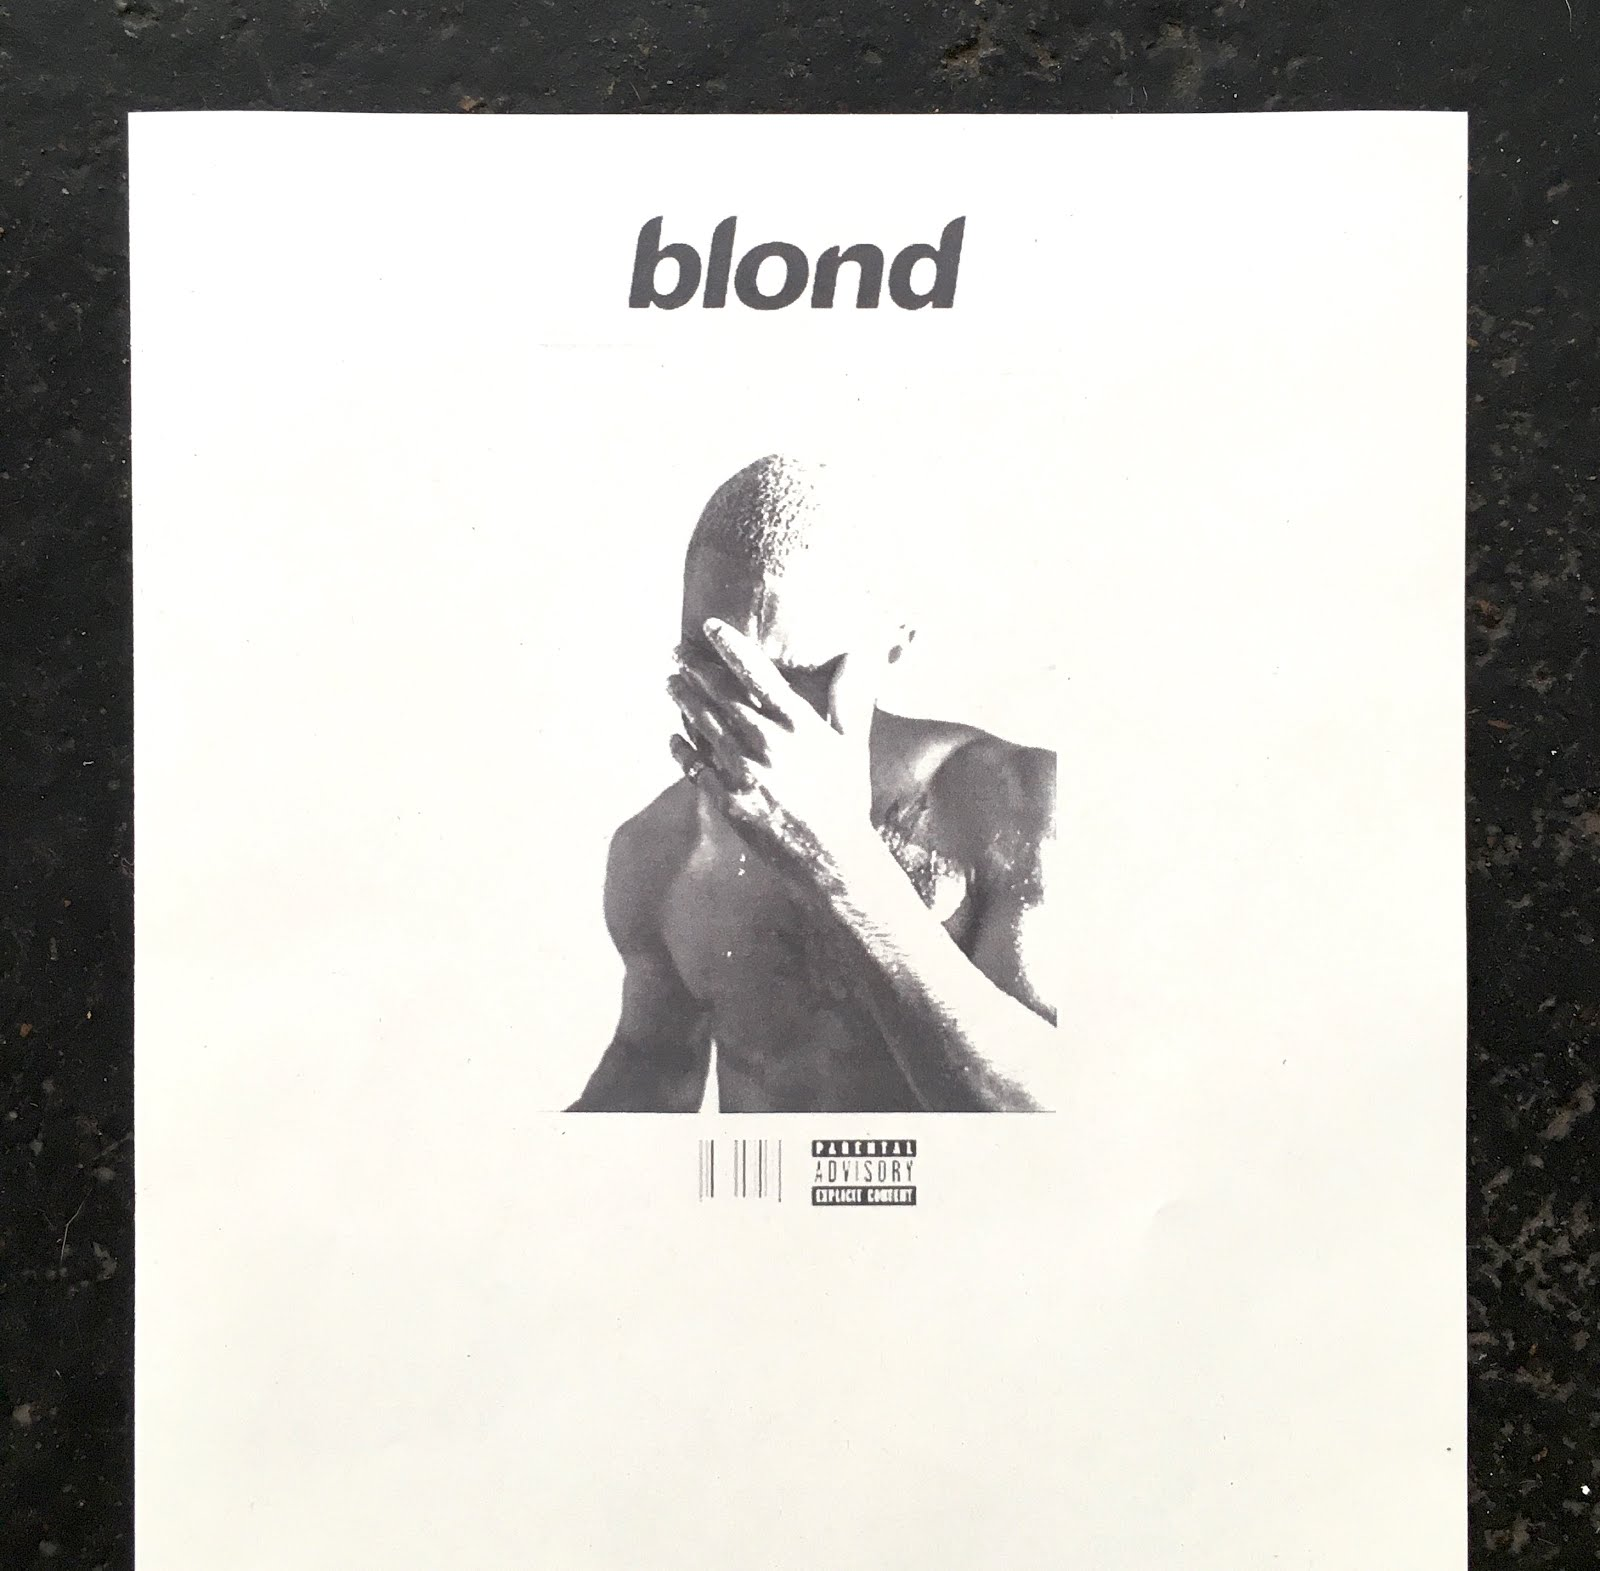 Frank Ocean Blond - Photo: dingoflamingo.com